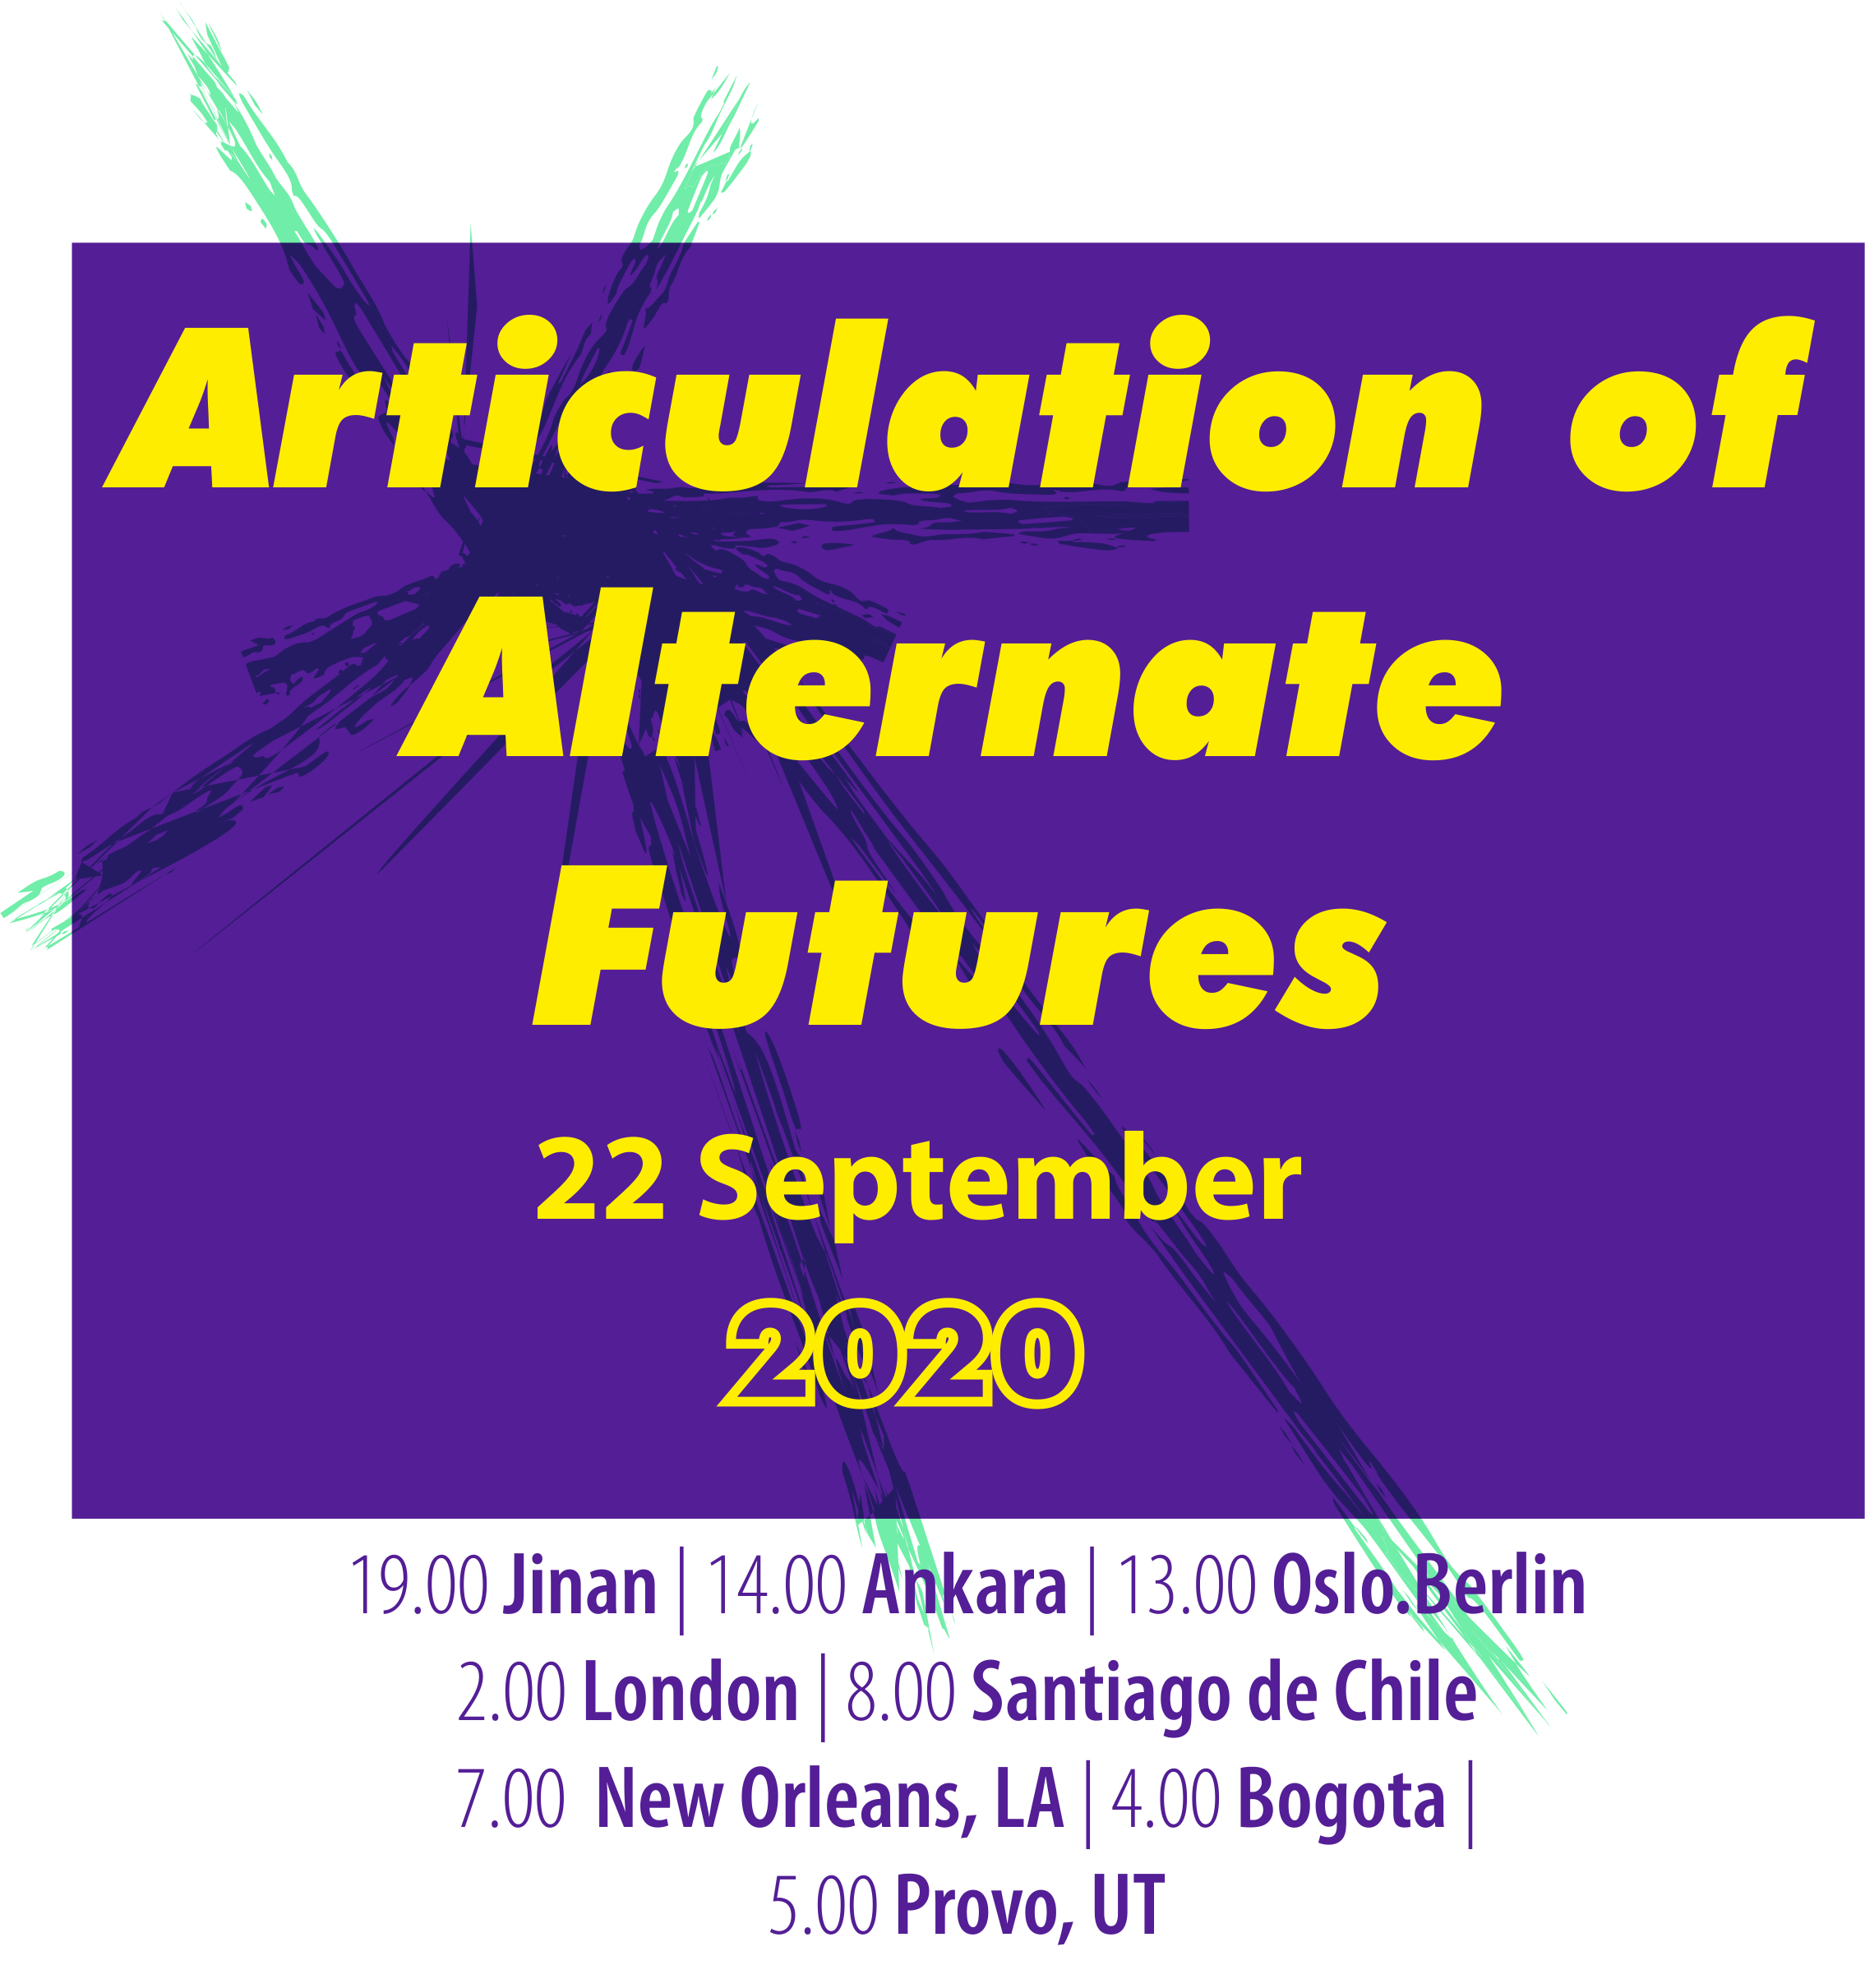 Articulation of Alternate Futures: Online Symposium | Event Archive